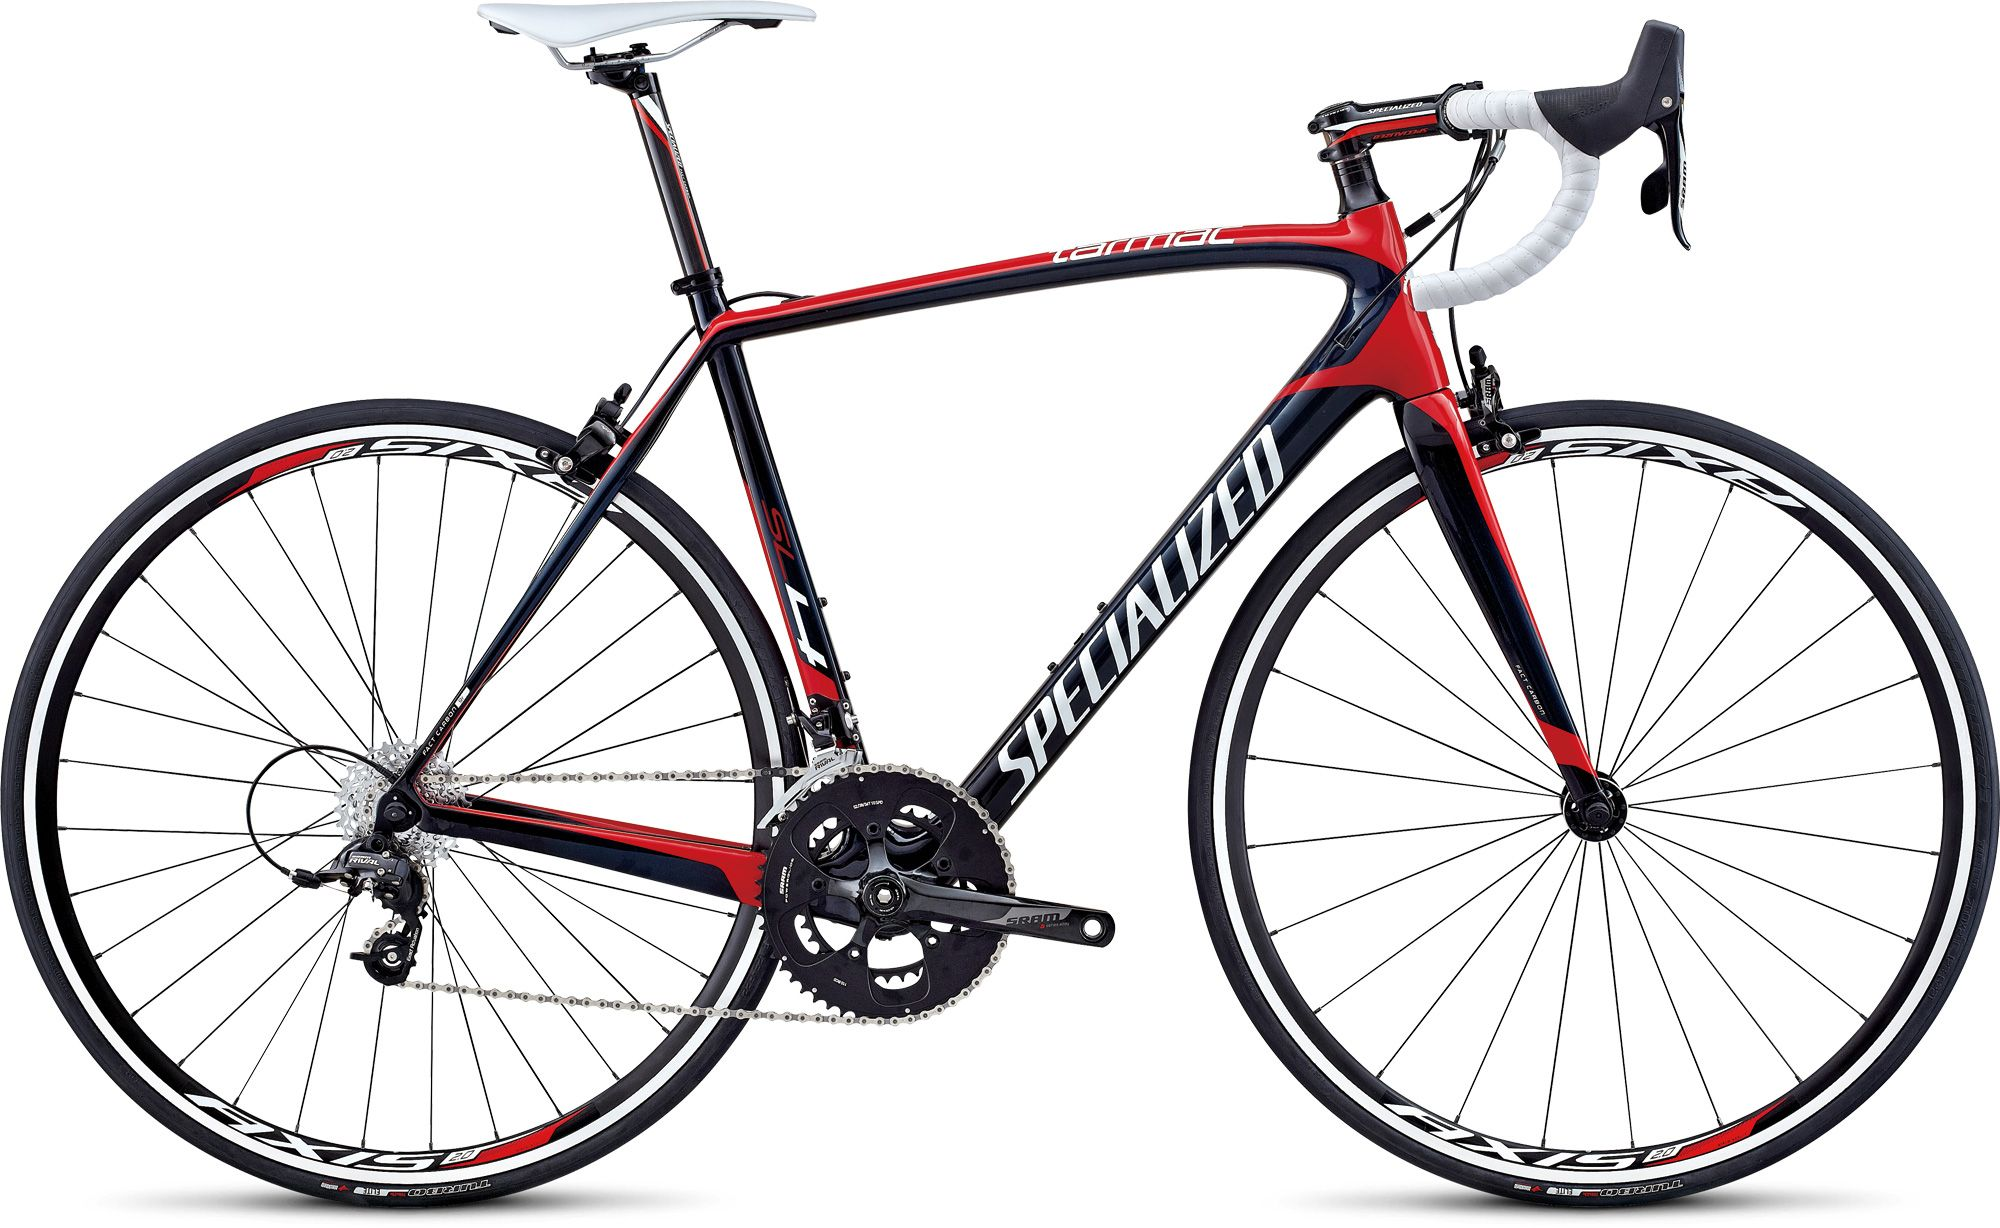 10 Best Road Bikes Of 2019 Buying Guide Detailed Reviews Comparison Best Road Bike Road Bike Road Bikes